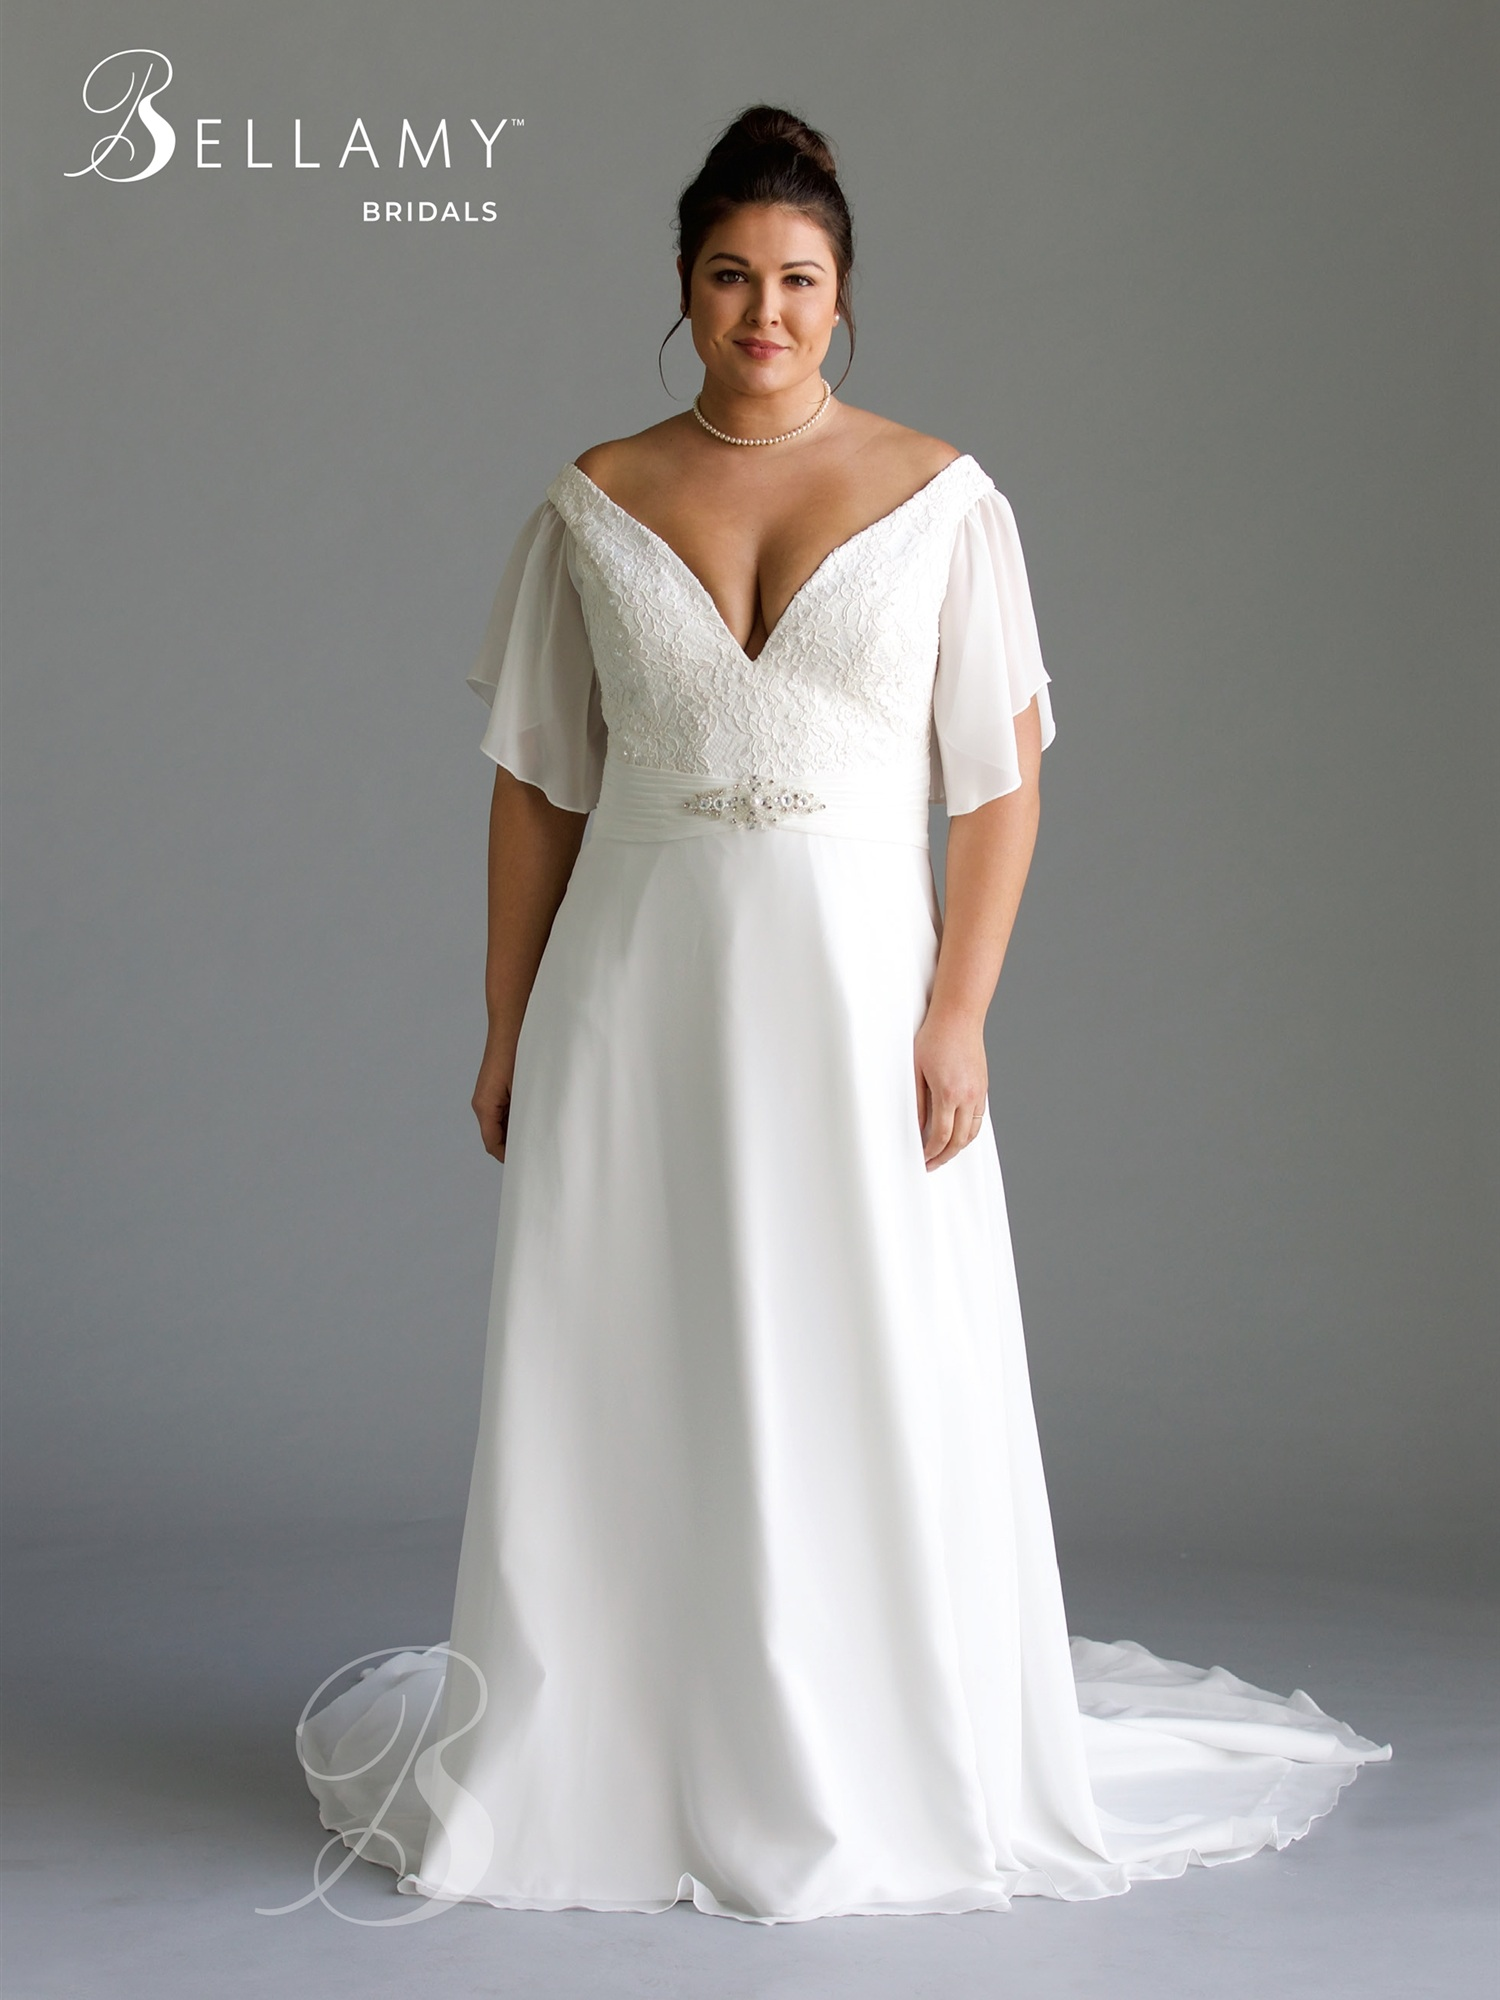 New Arrivals | Bellamy Bridal Plus Size Collection ...